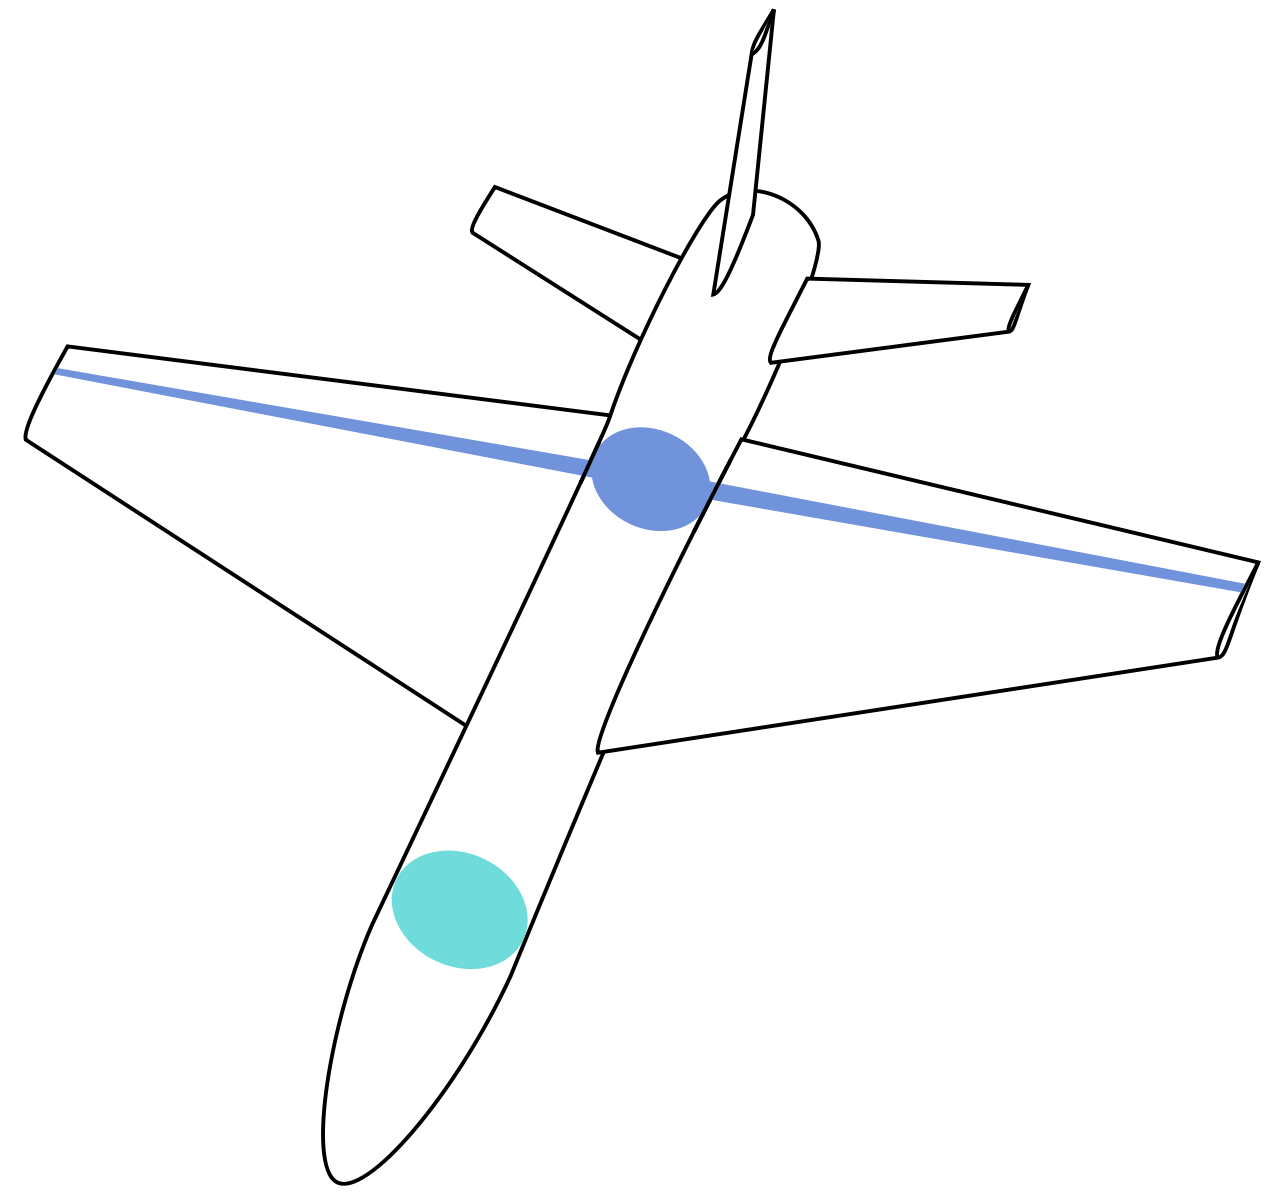 Drawing airplane wing. Aircraft design how is